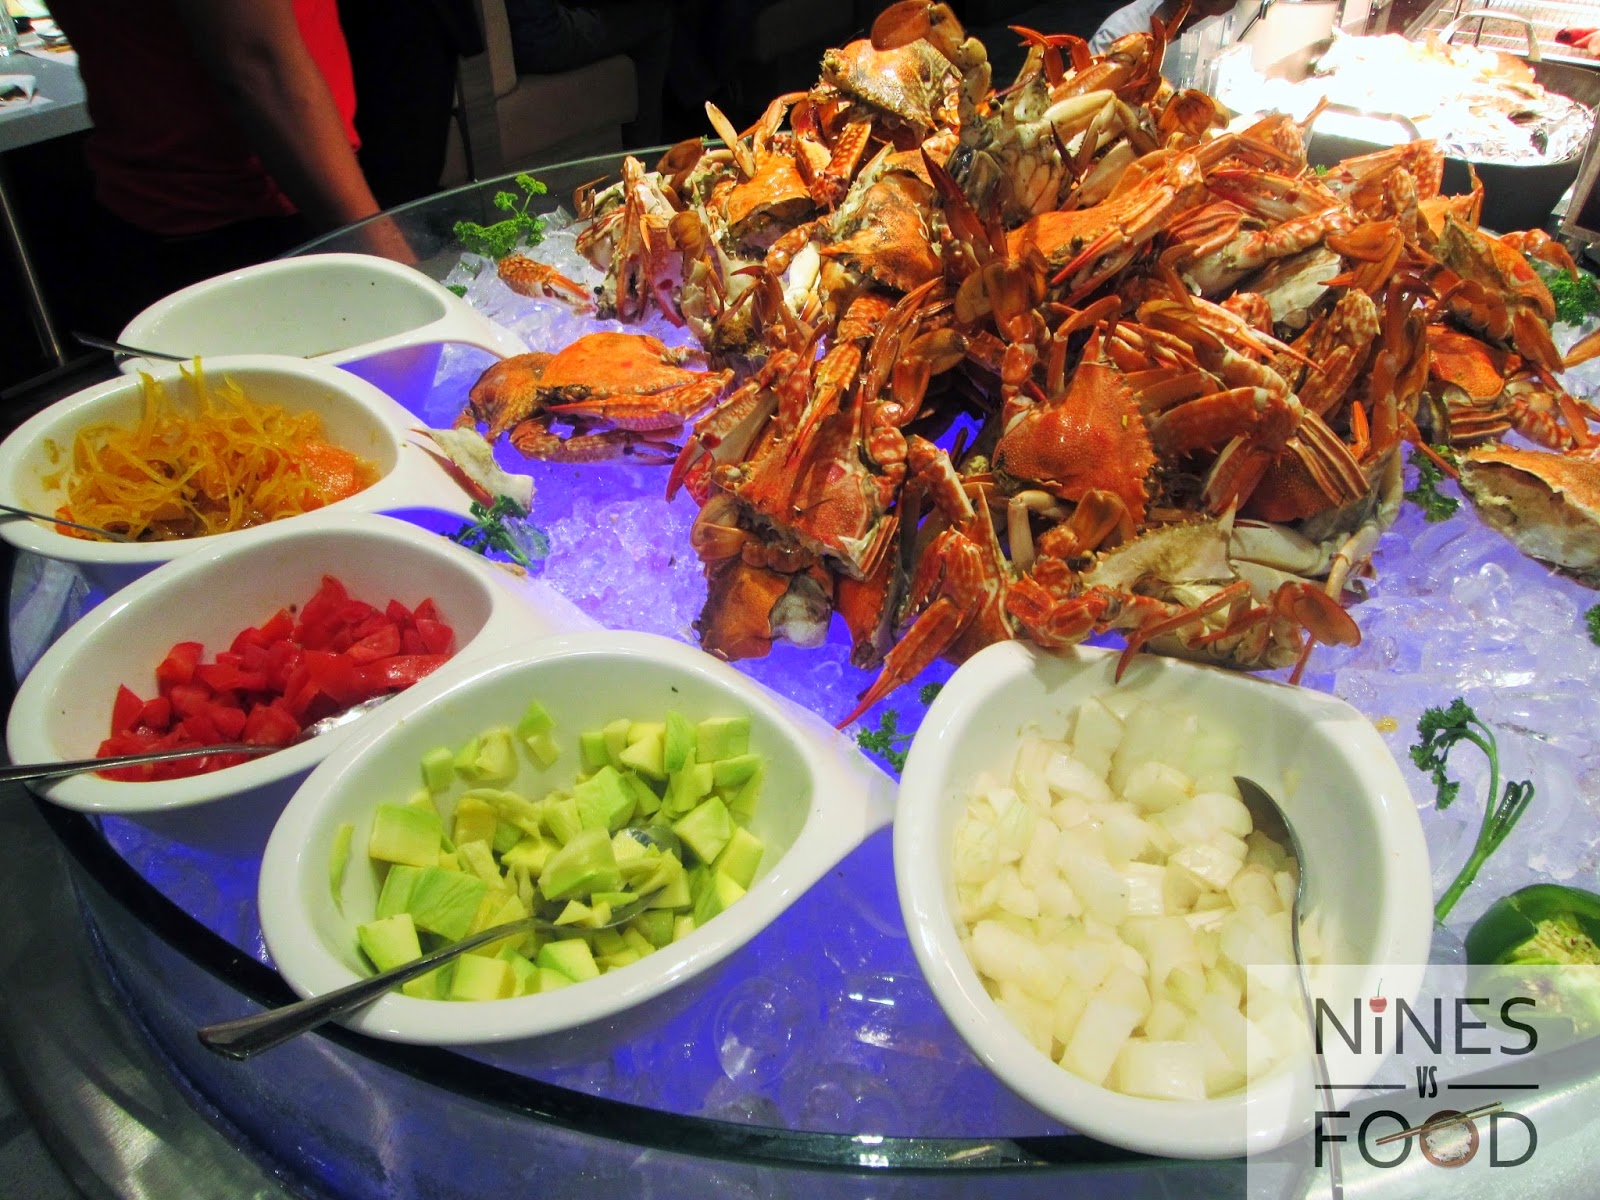 Nines vs. Food - Vikings SM Megamall-9.jpg